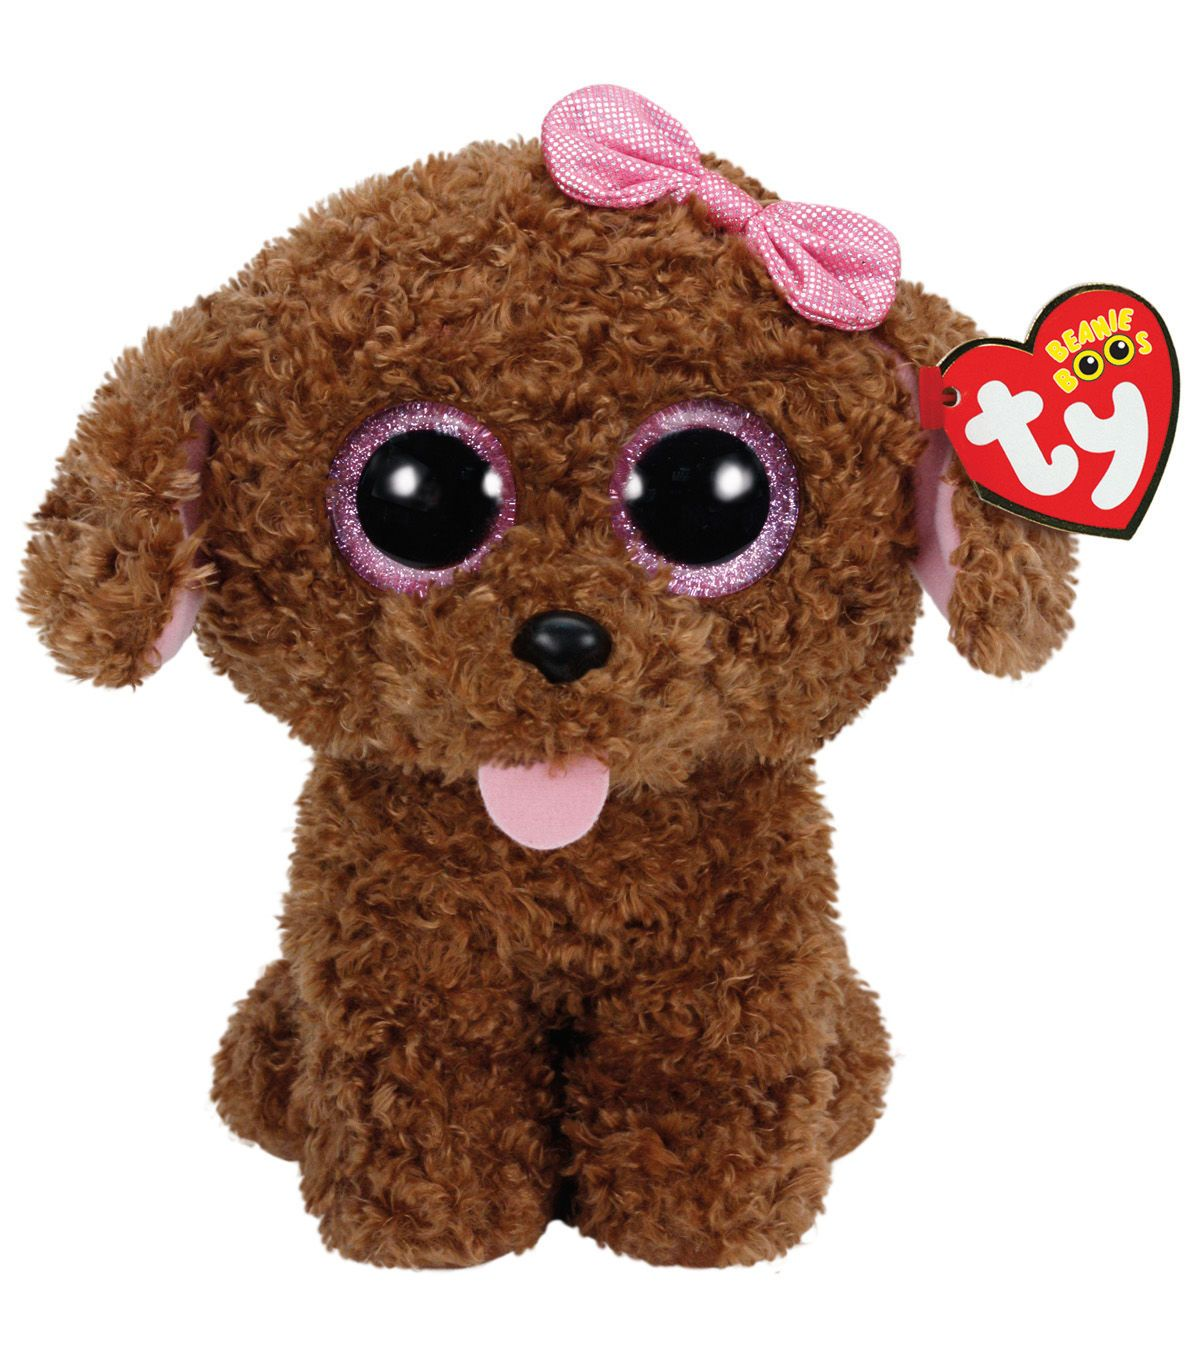 Ty Beanie Boos Maddie The Brown Dog with Bow Plush  b11d7e354650